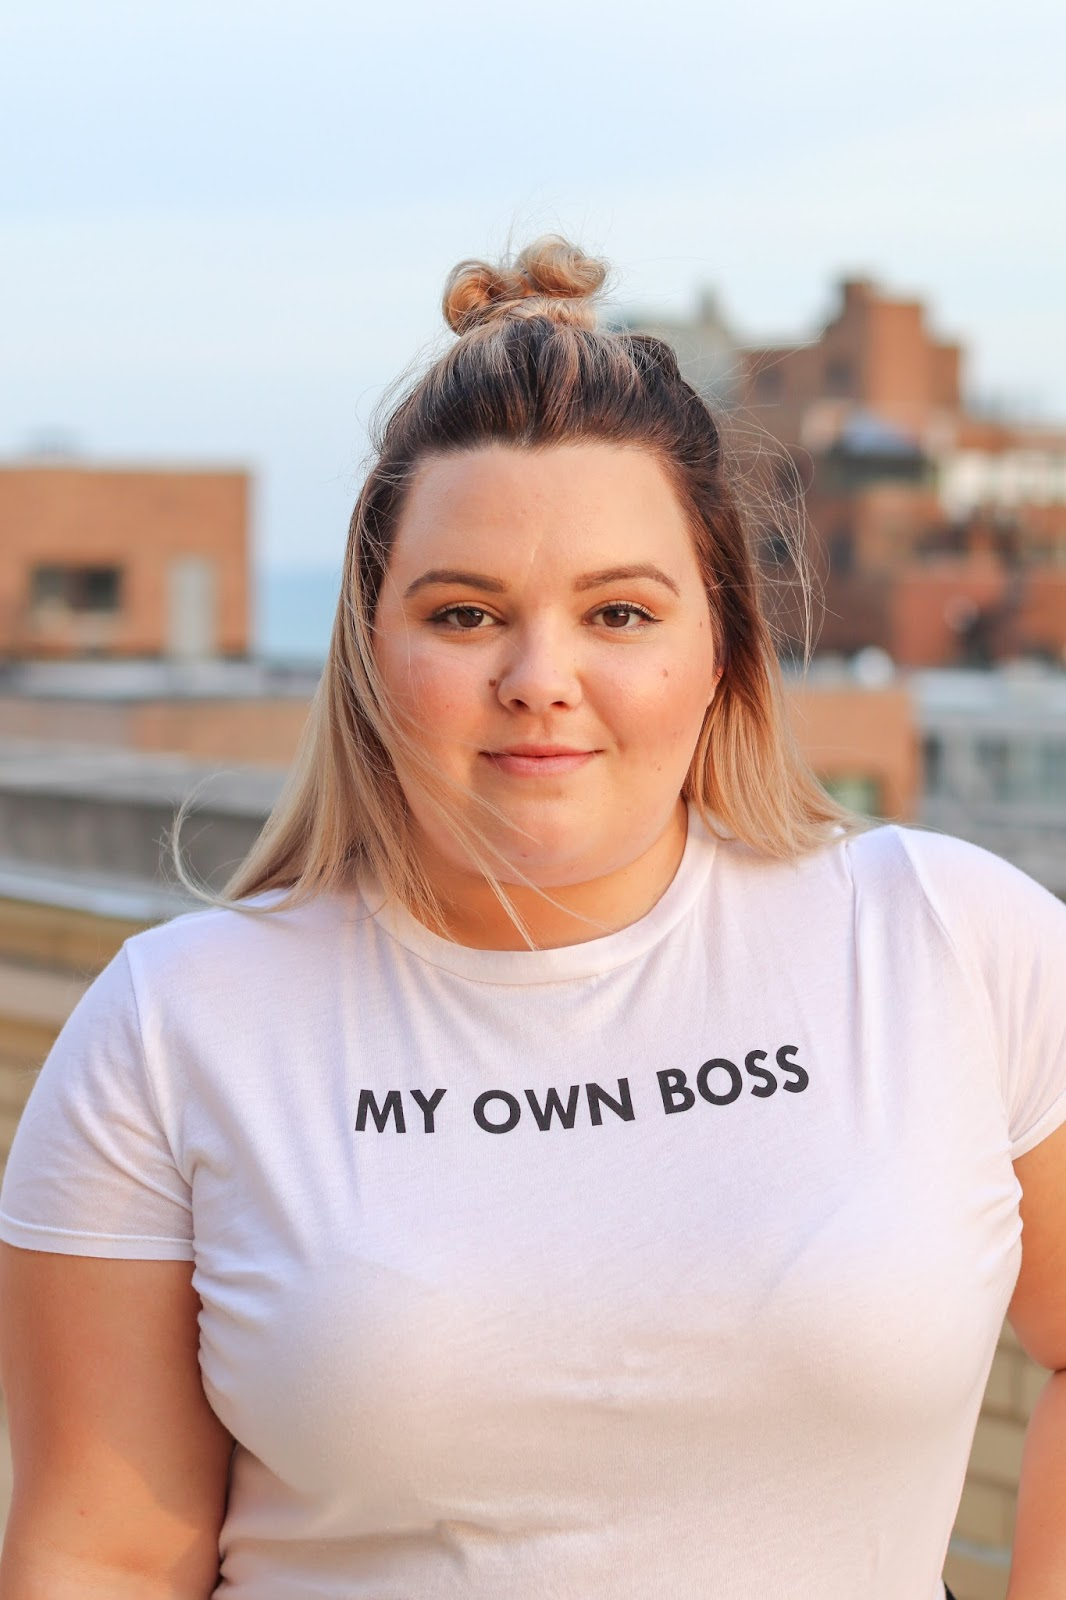 gaining confidence, natalie in the city, chicago fashion blogger, plus size fashion blogger, affordable plus size clothing, plus size fashion, chicago blogger, curves and confidence, fashion nova curve, fashion nova, fatshion, plus size crop tops